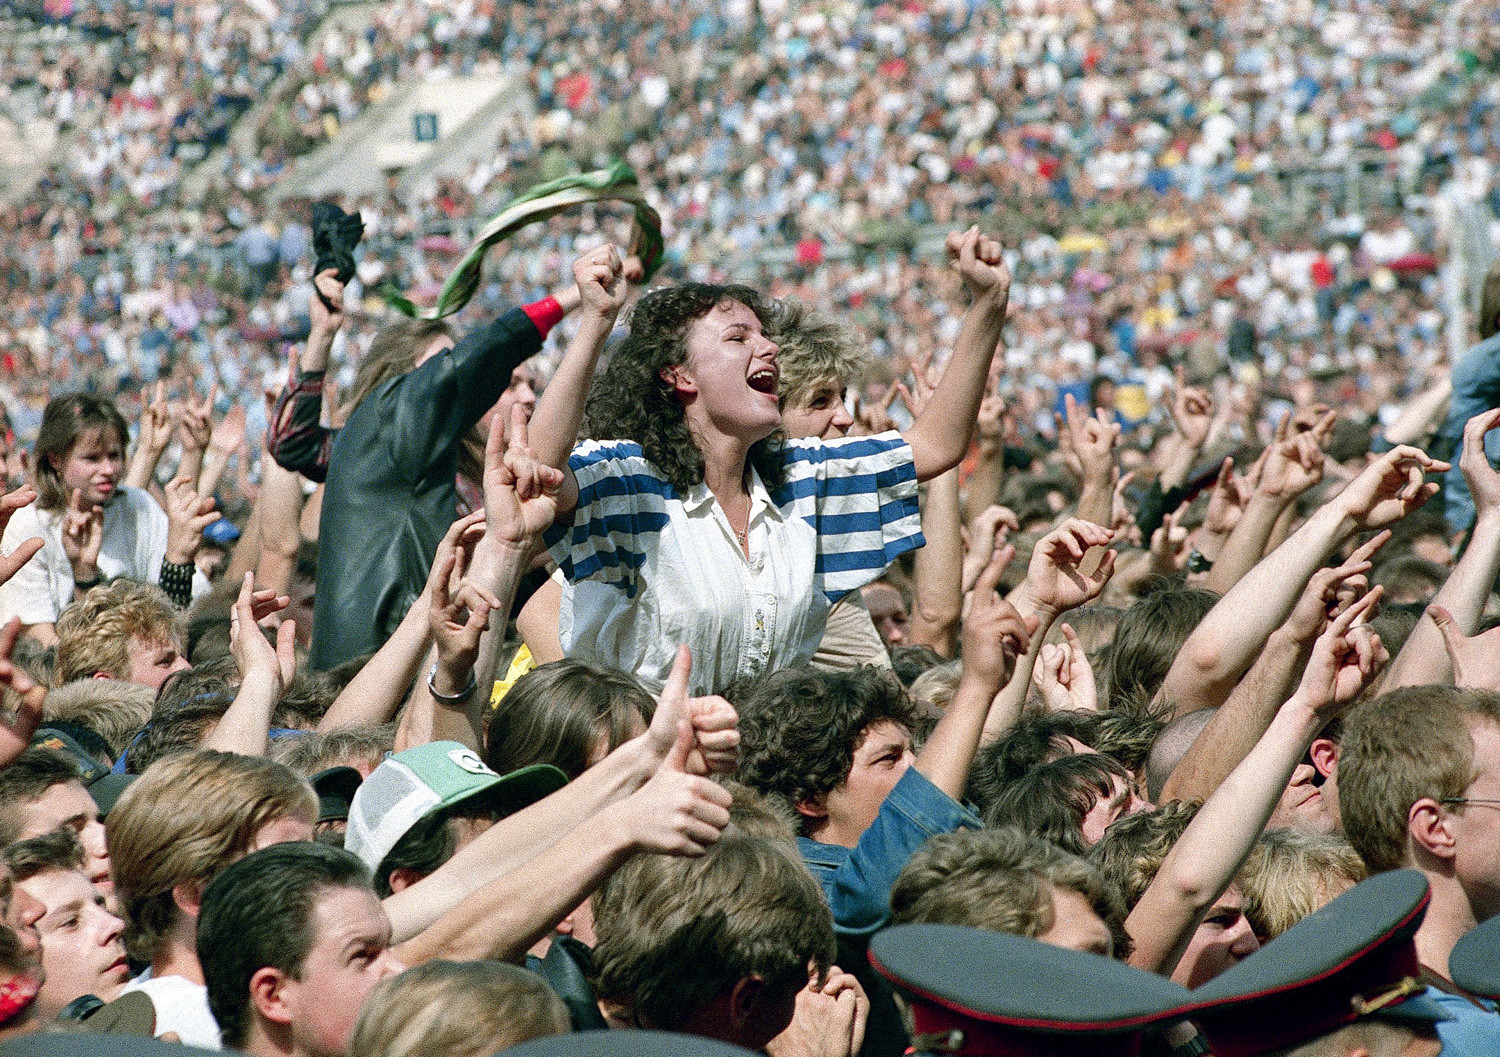 Western heavy metal rock bands including Bon Jovi, and Cinderella were enthusiastically received by loving fans in Moscow on Saturday, August 12, 1989